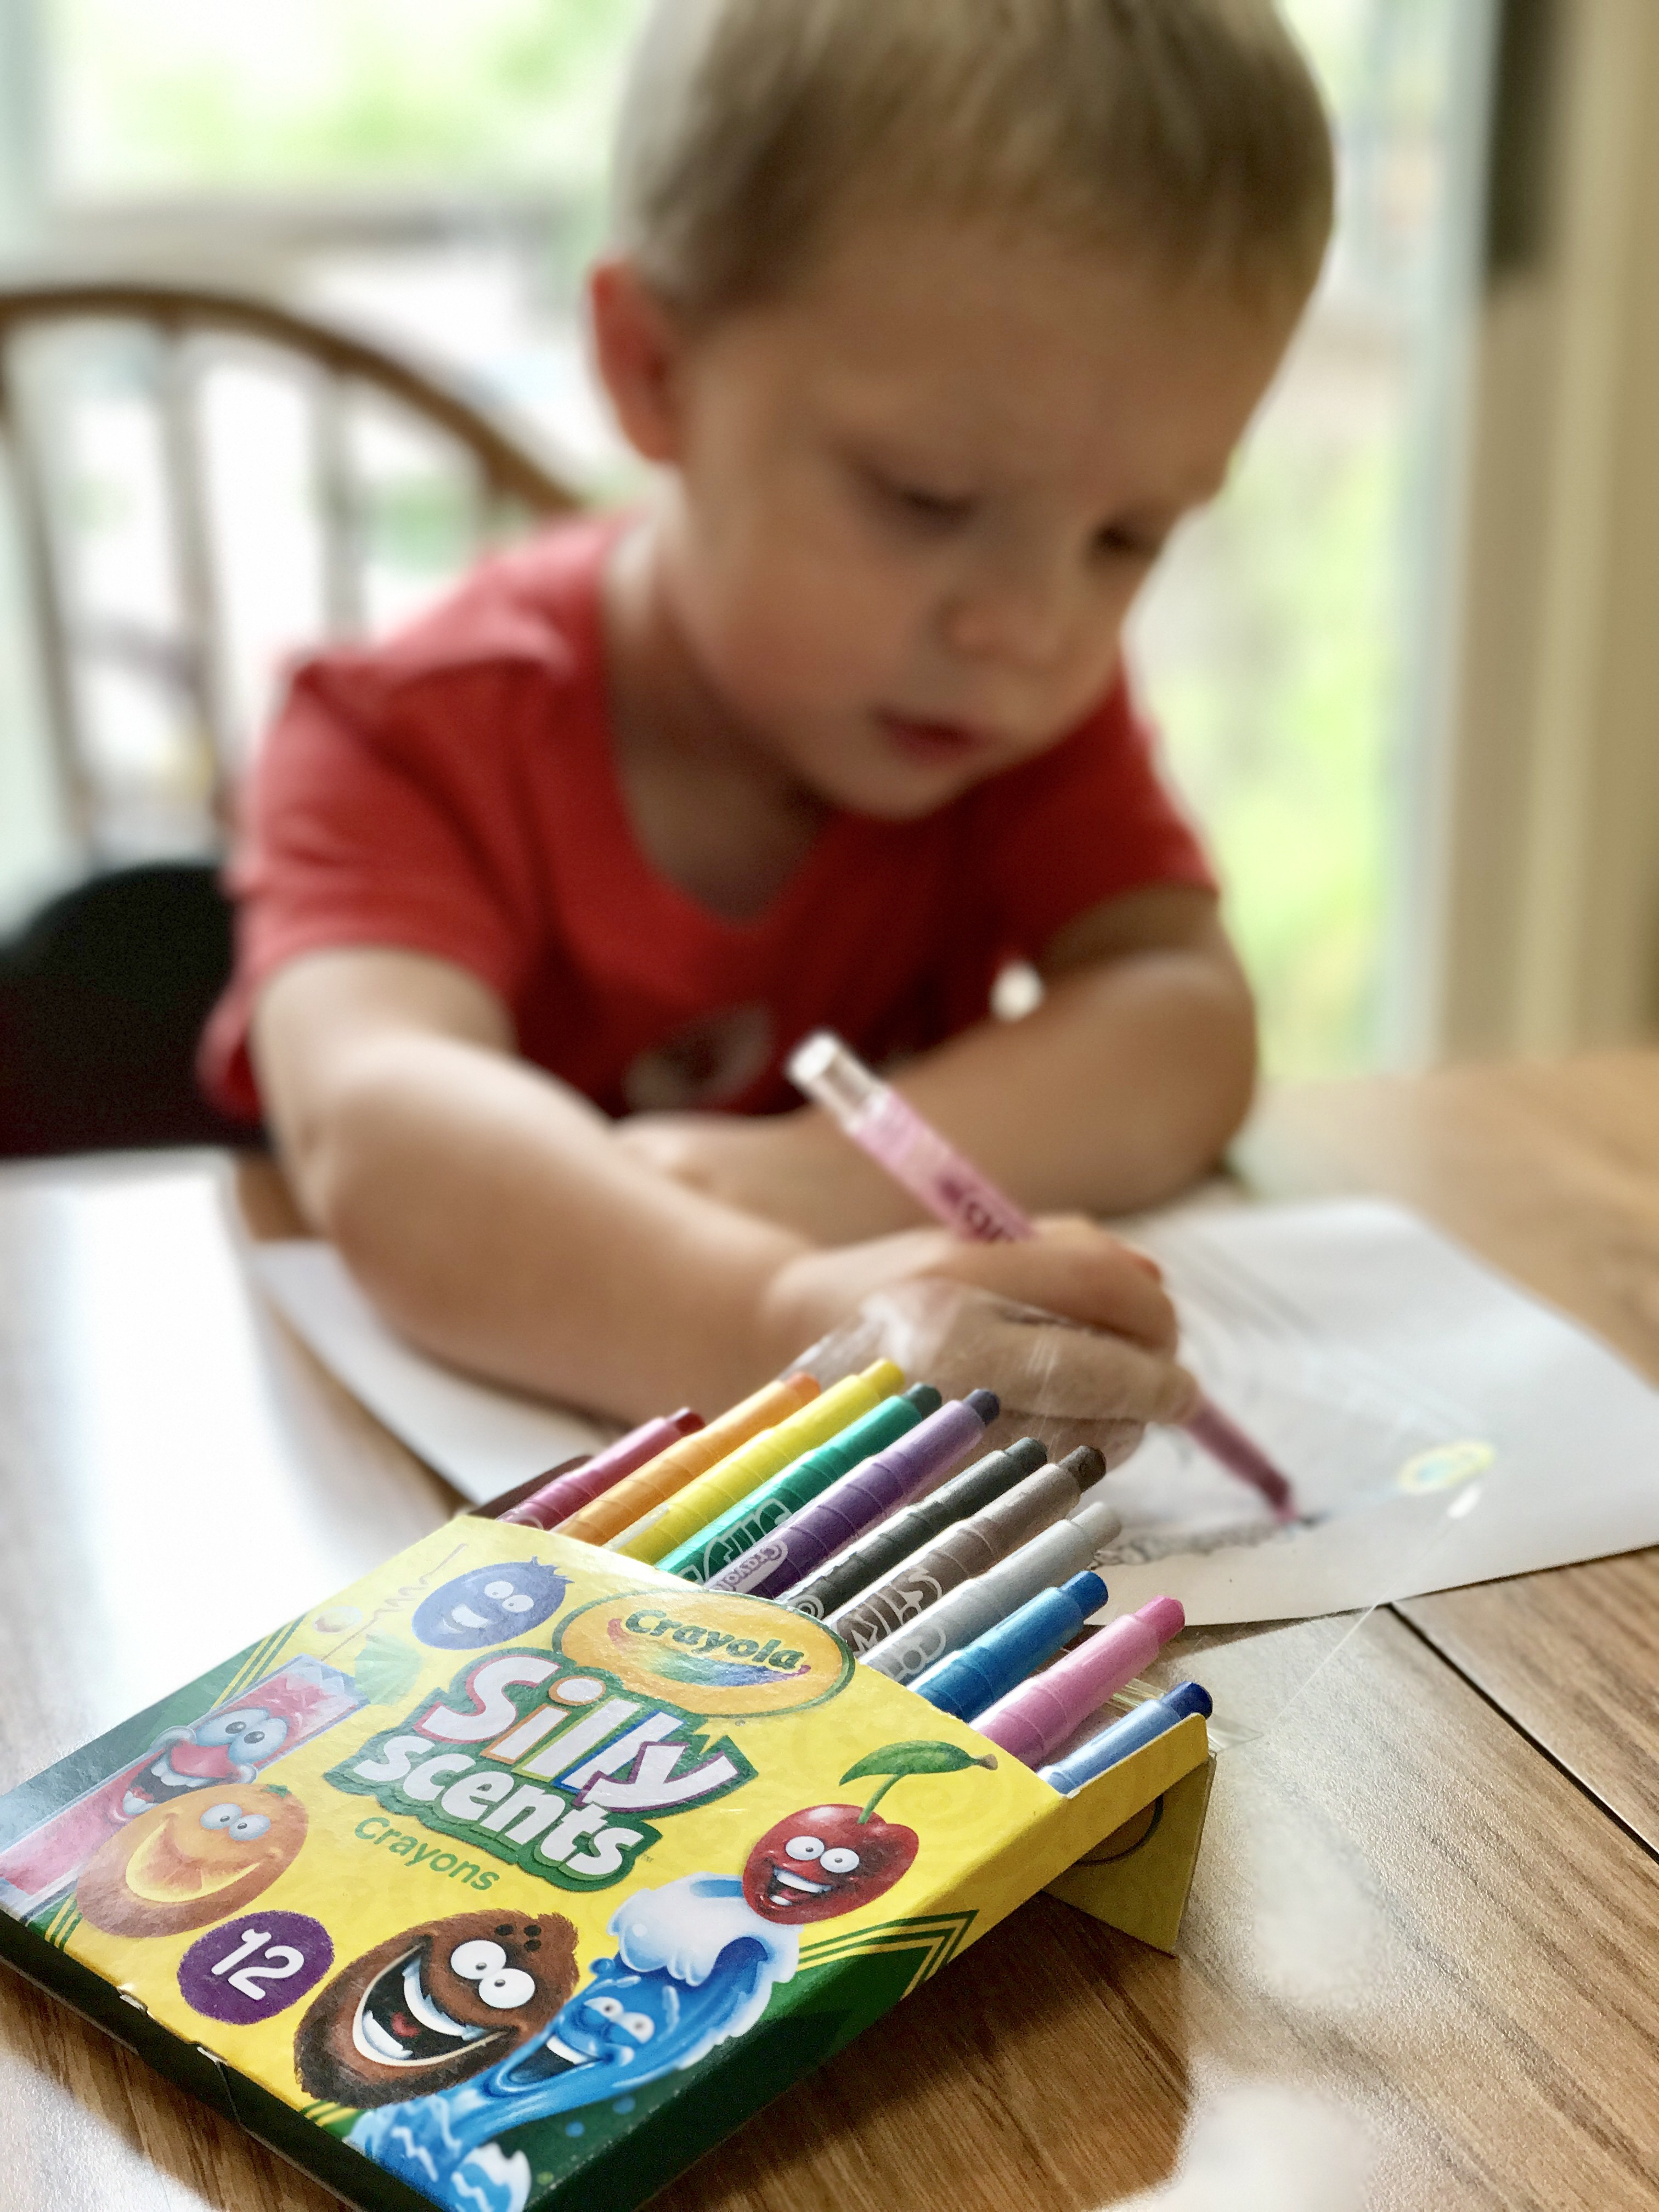 Back to School Fun with Crayola Silly Scents!